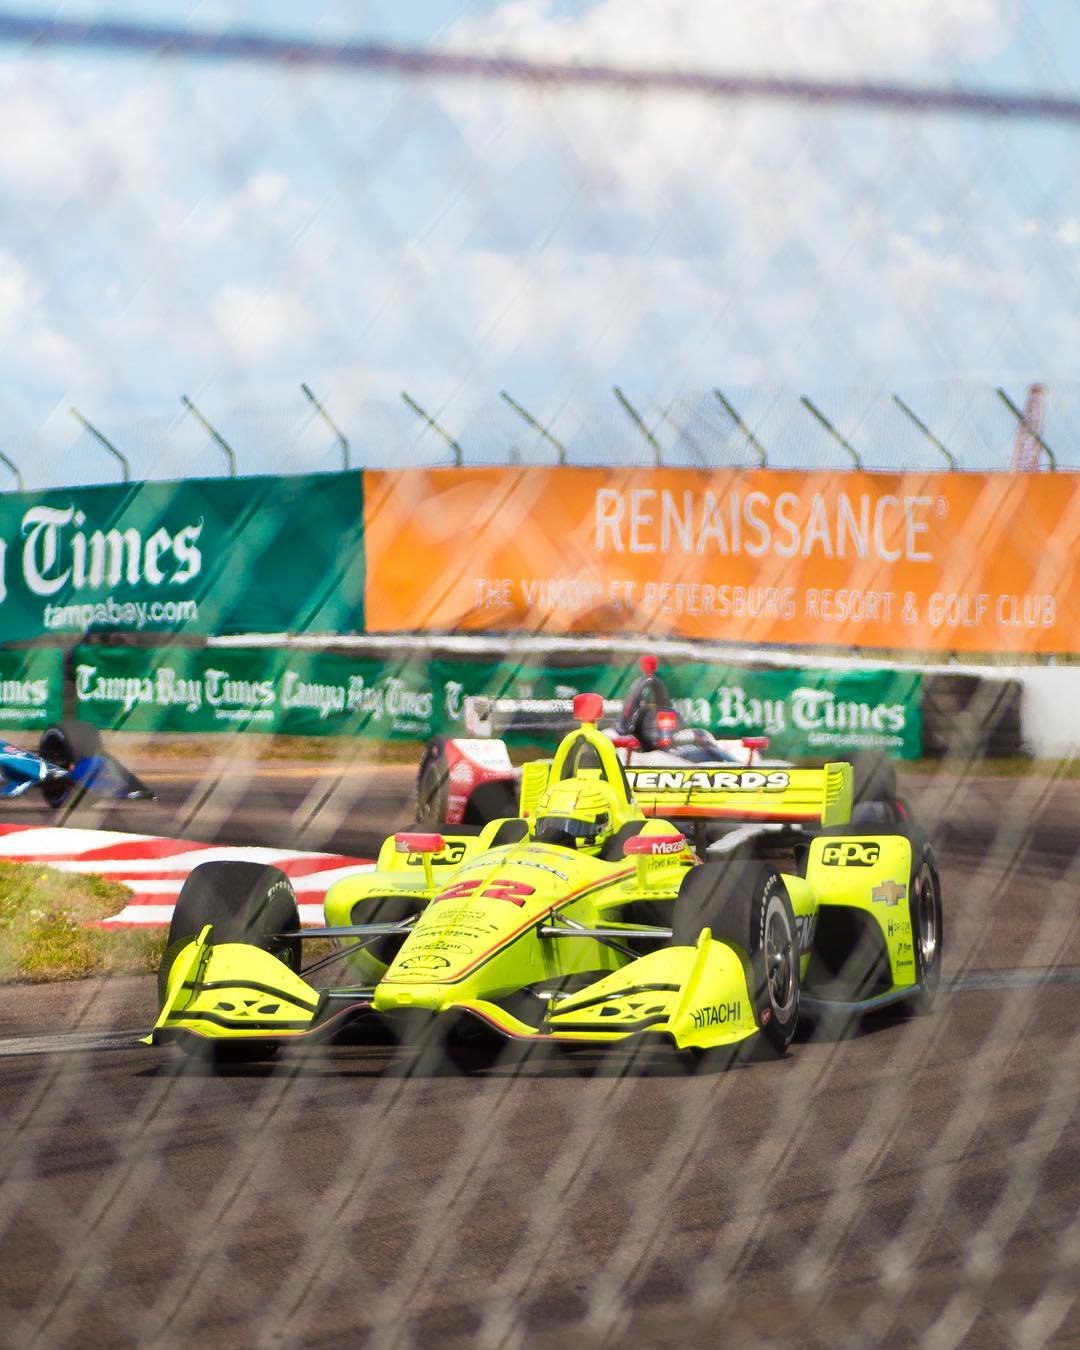 If anyone was curious there are only 337 days until the next Firestone Grand Prix.